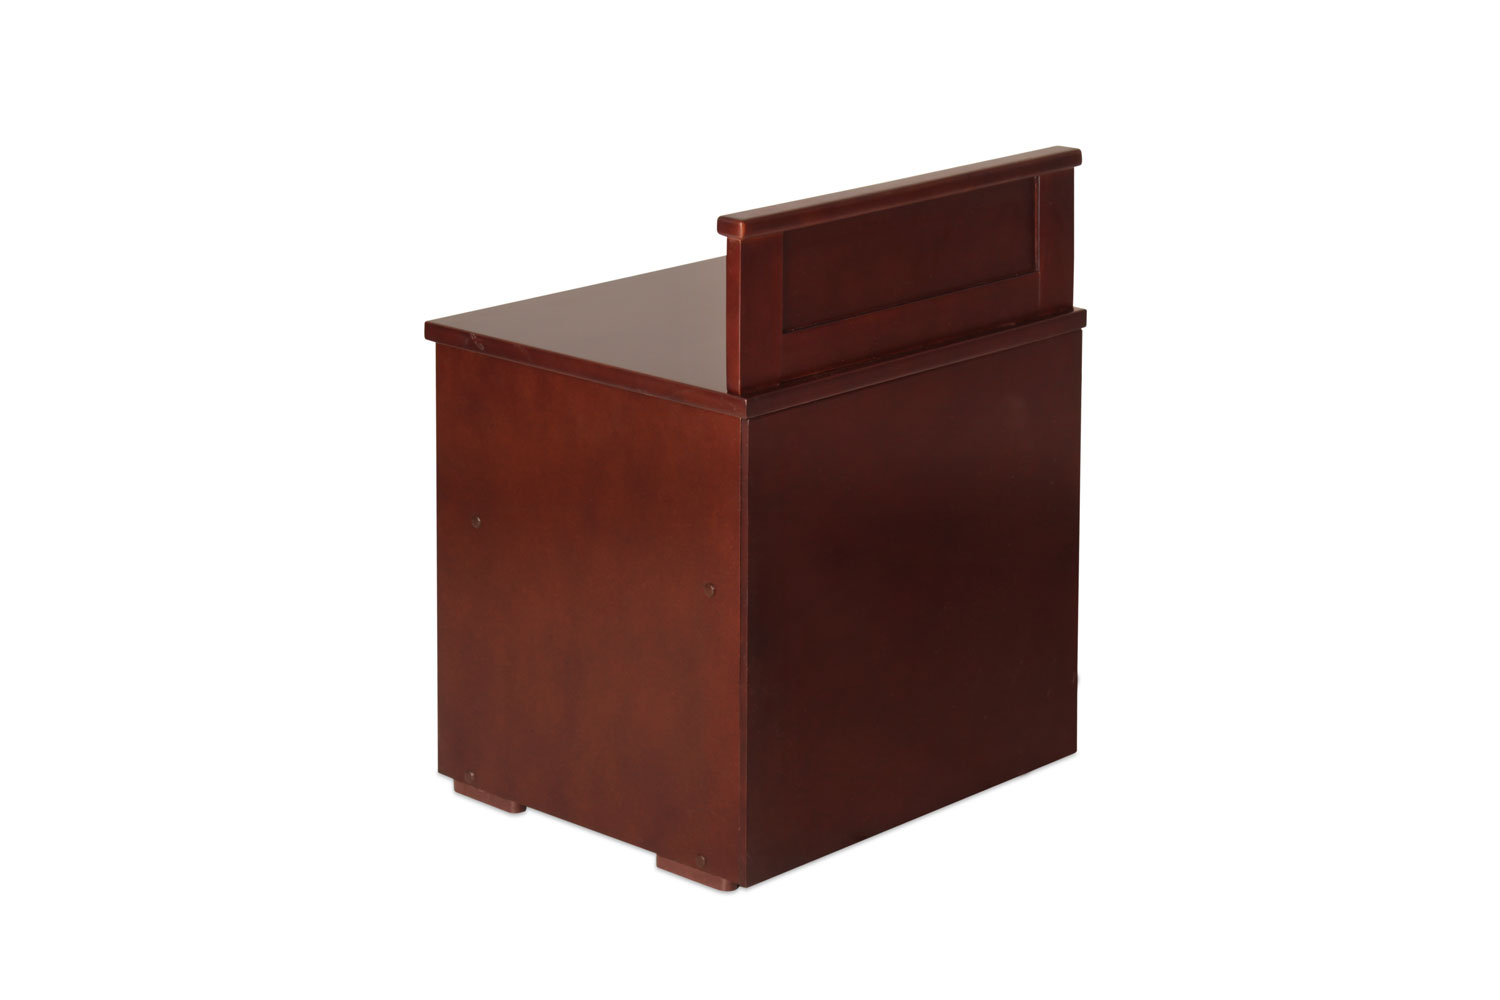 touchwood_ajantha_solidwood_bed_side_table_walnut_finish_7_4